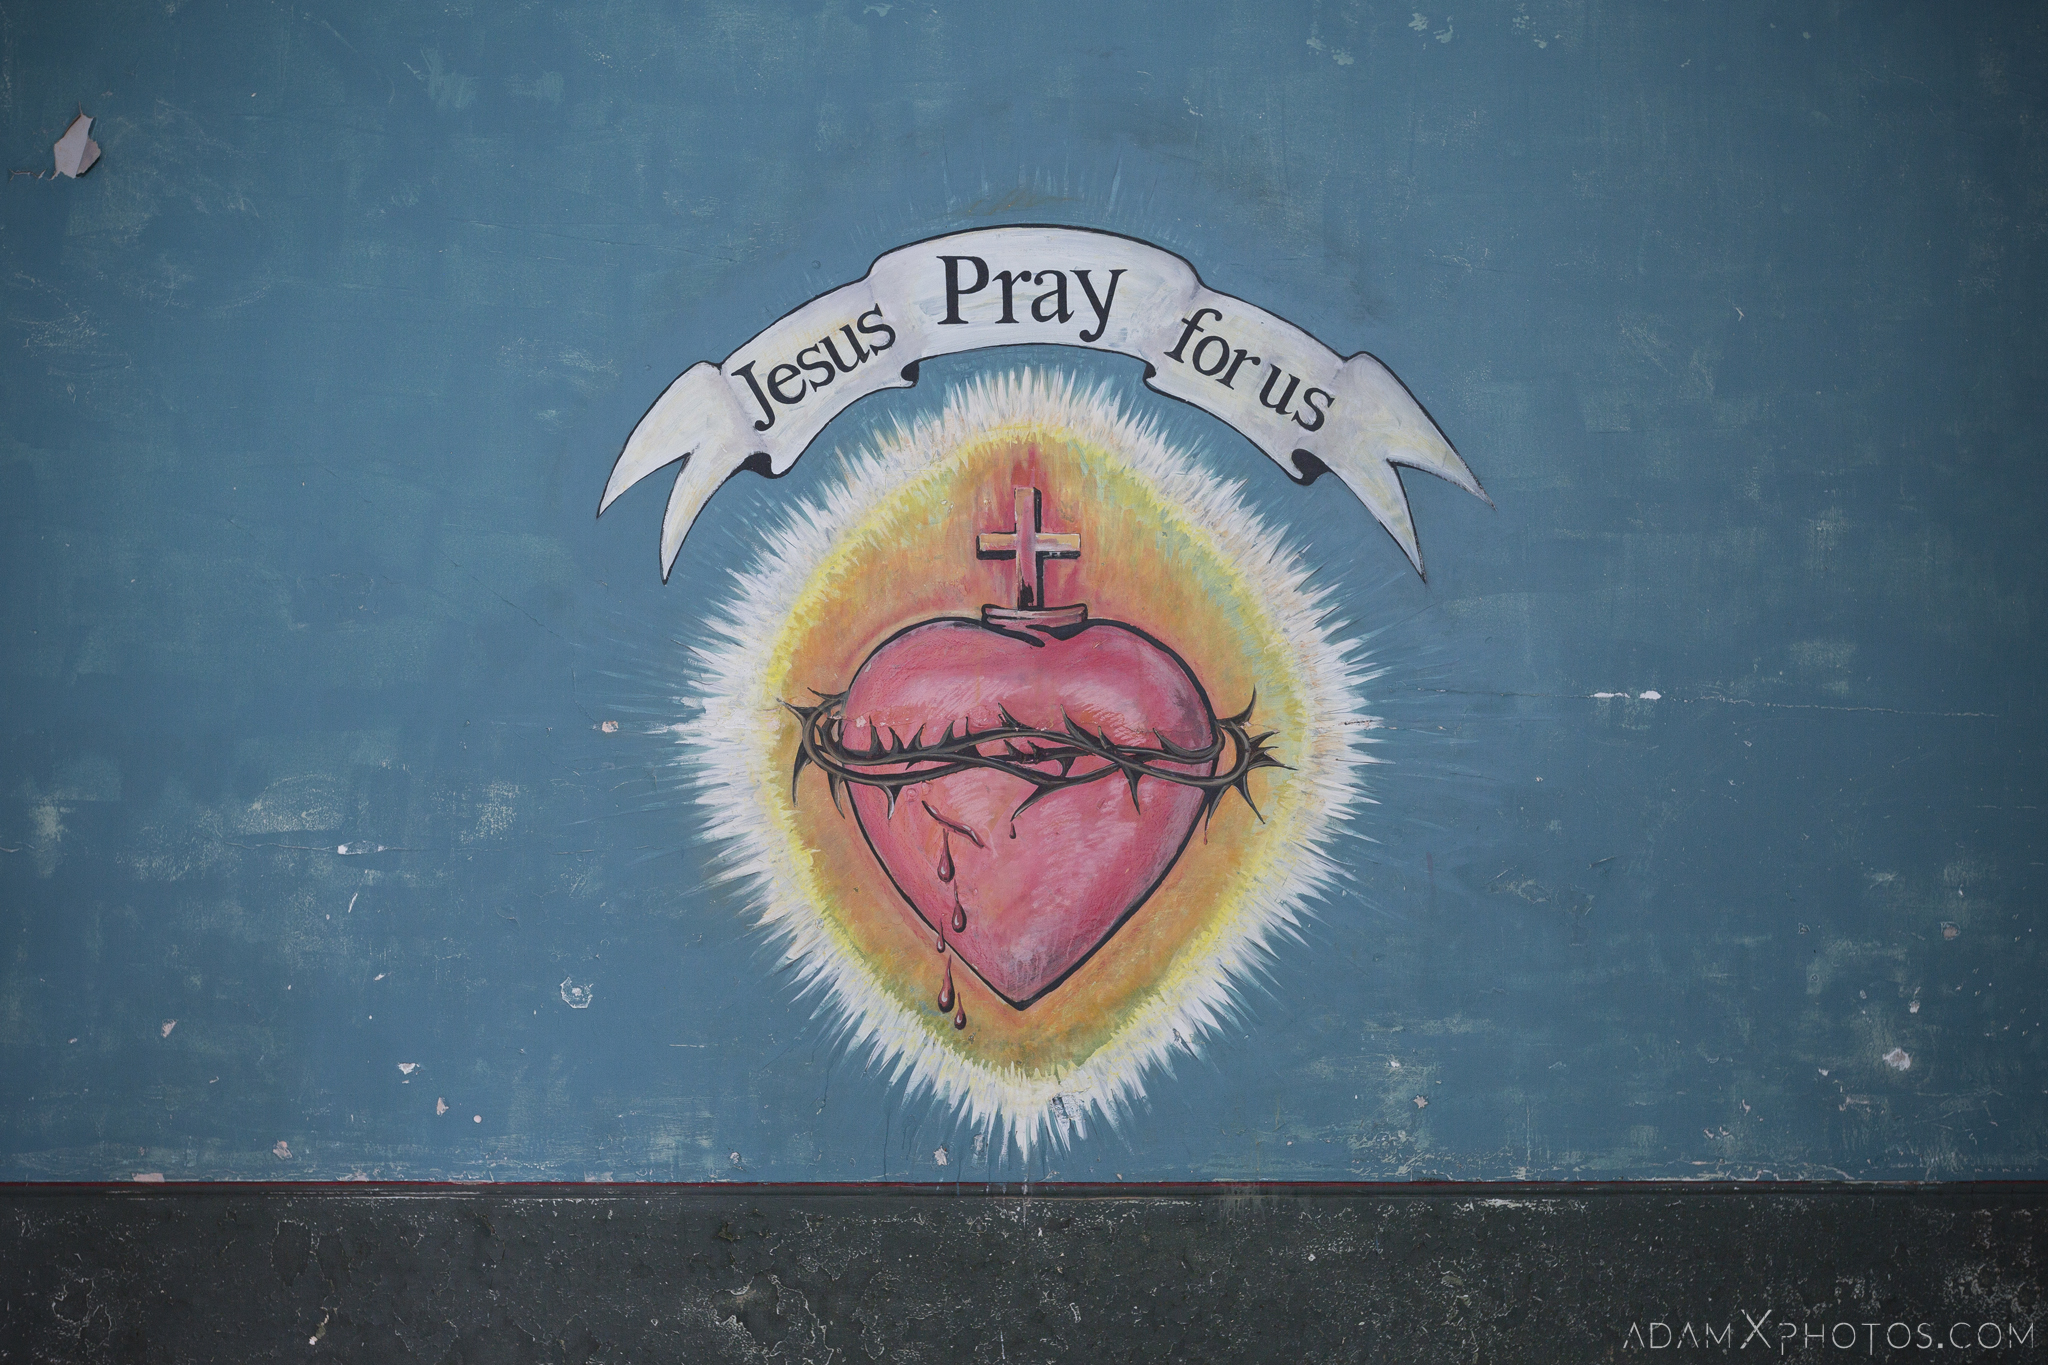 Jesus pray for us mural wall painting De Salle College School Colaiste Iosagain Ballyvourney County Cork Adam X Urbex Urban Exploration Ireland Access 2017 Abandoned decay lost forgotten derelict location creepy haunting eerie